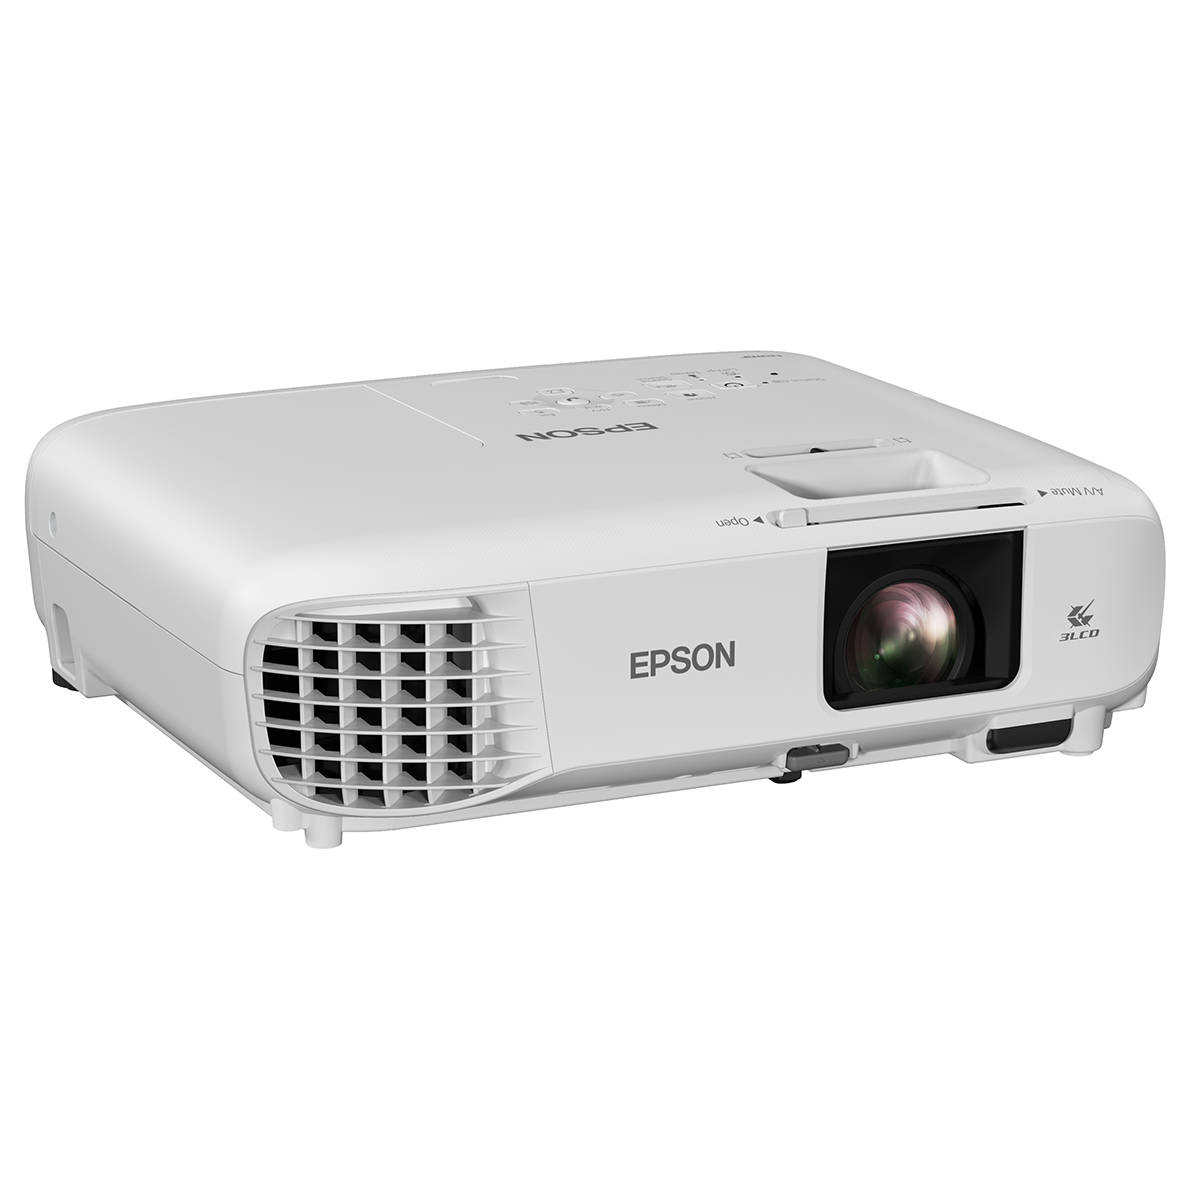 Epson EH-TW740 Full HD 1080p Projector